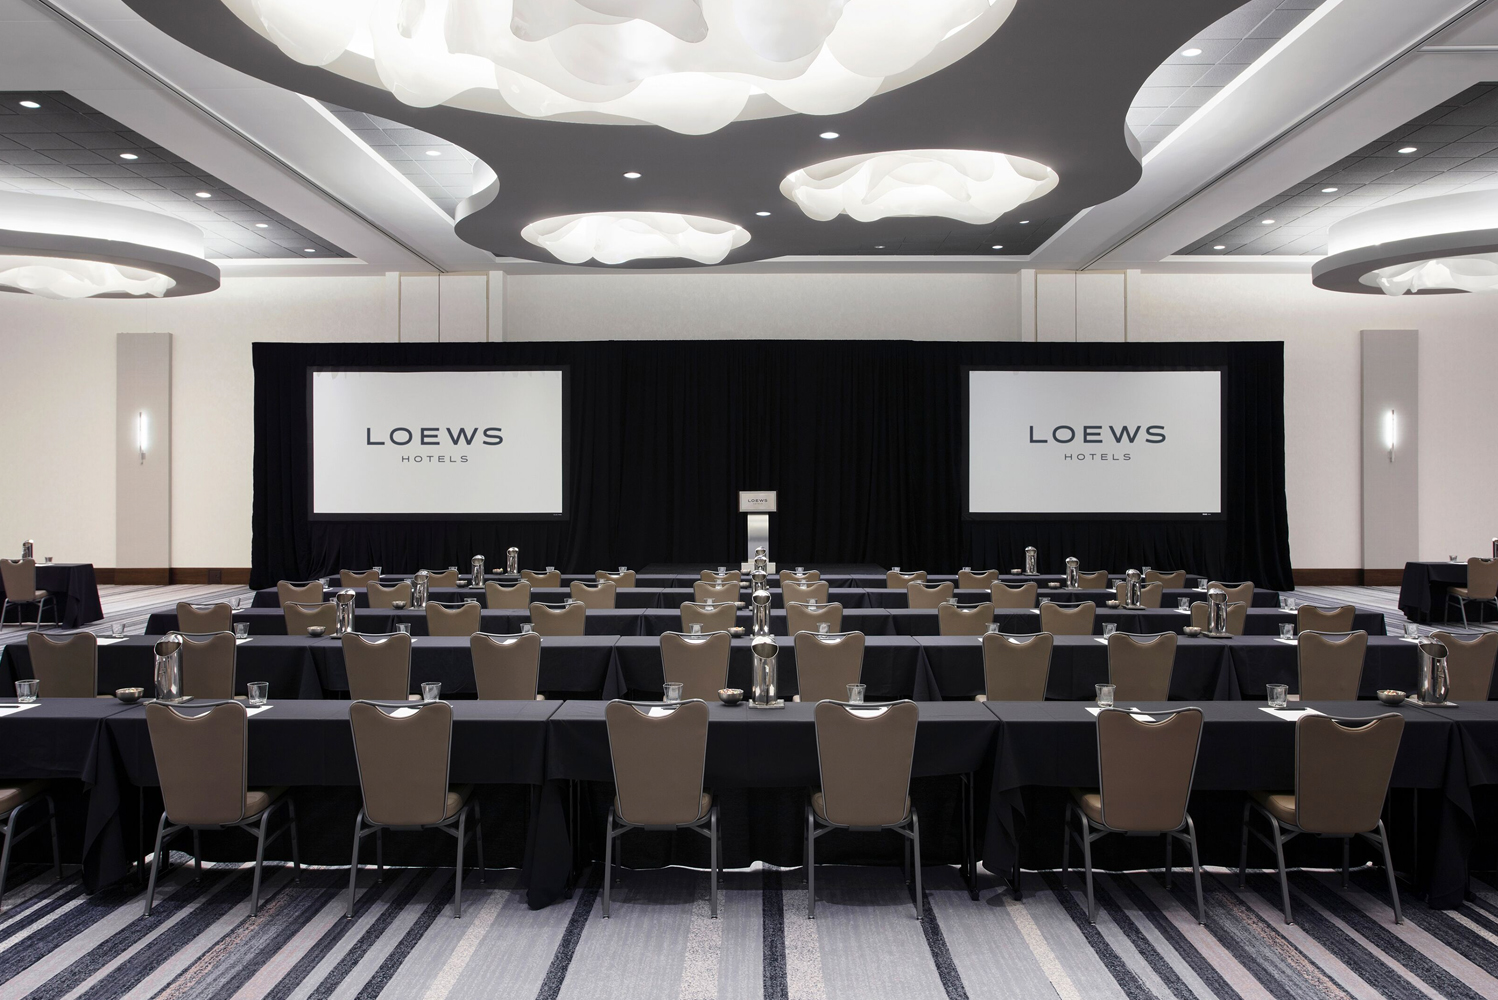 The hotel has 53,000 square feet of meeting and event space.